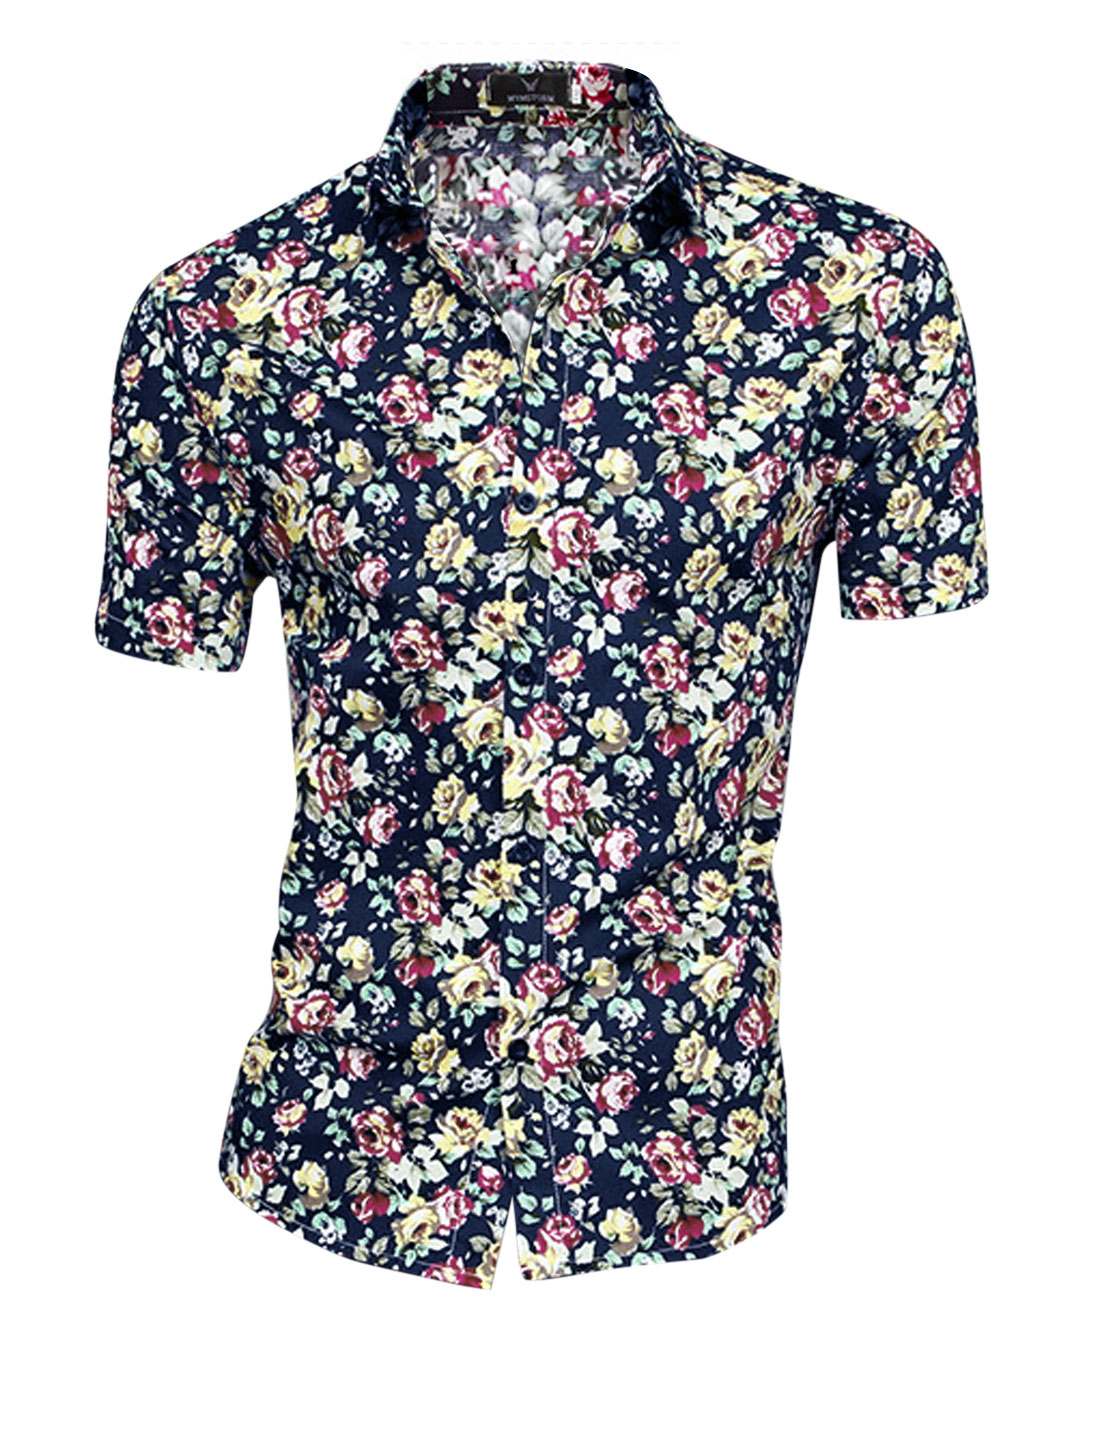 Men Flower Pattern Buttons Closed Casual Style Top Navy Blue Fuchsia M